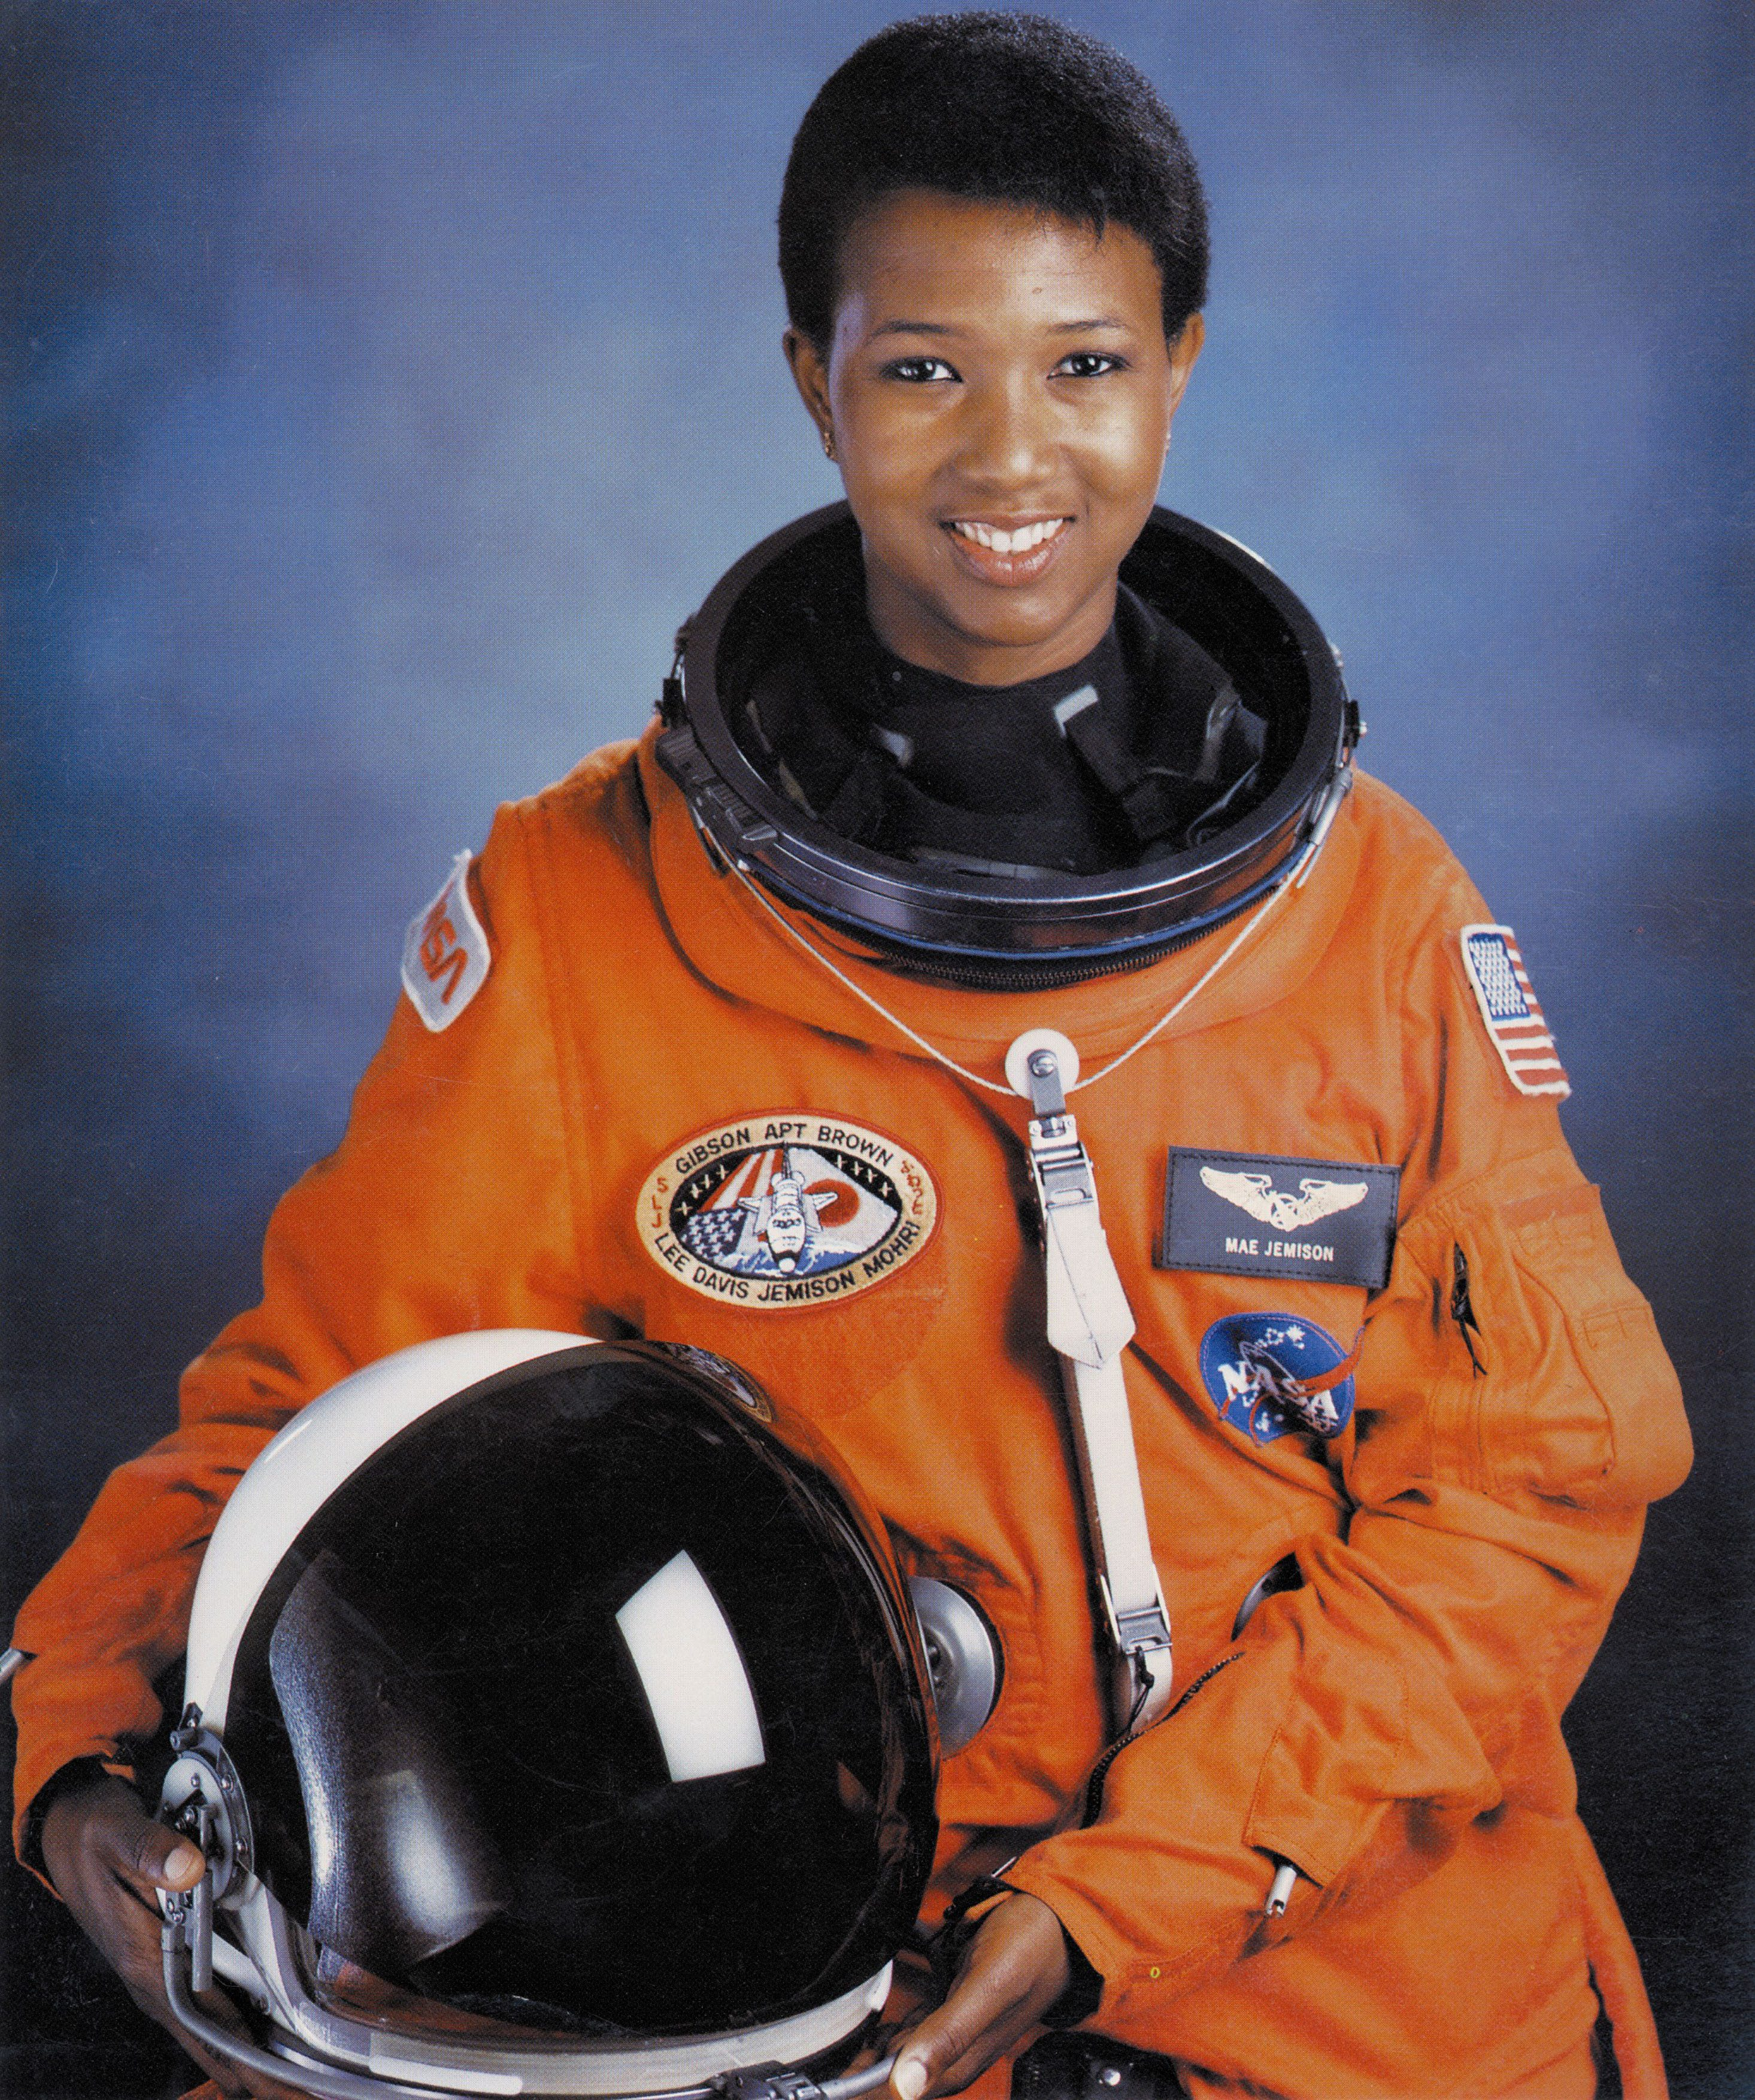 Mae C Jemison, first African-American woman in space, July 1992.